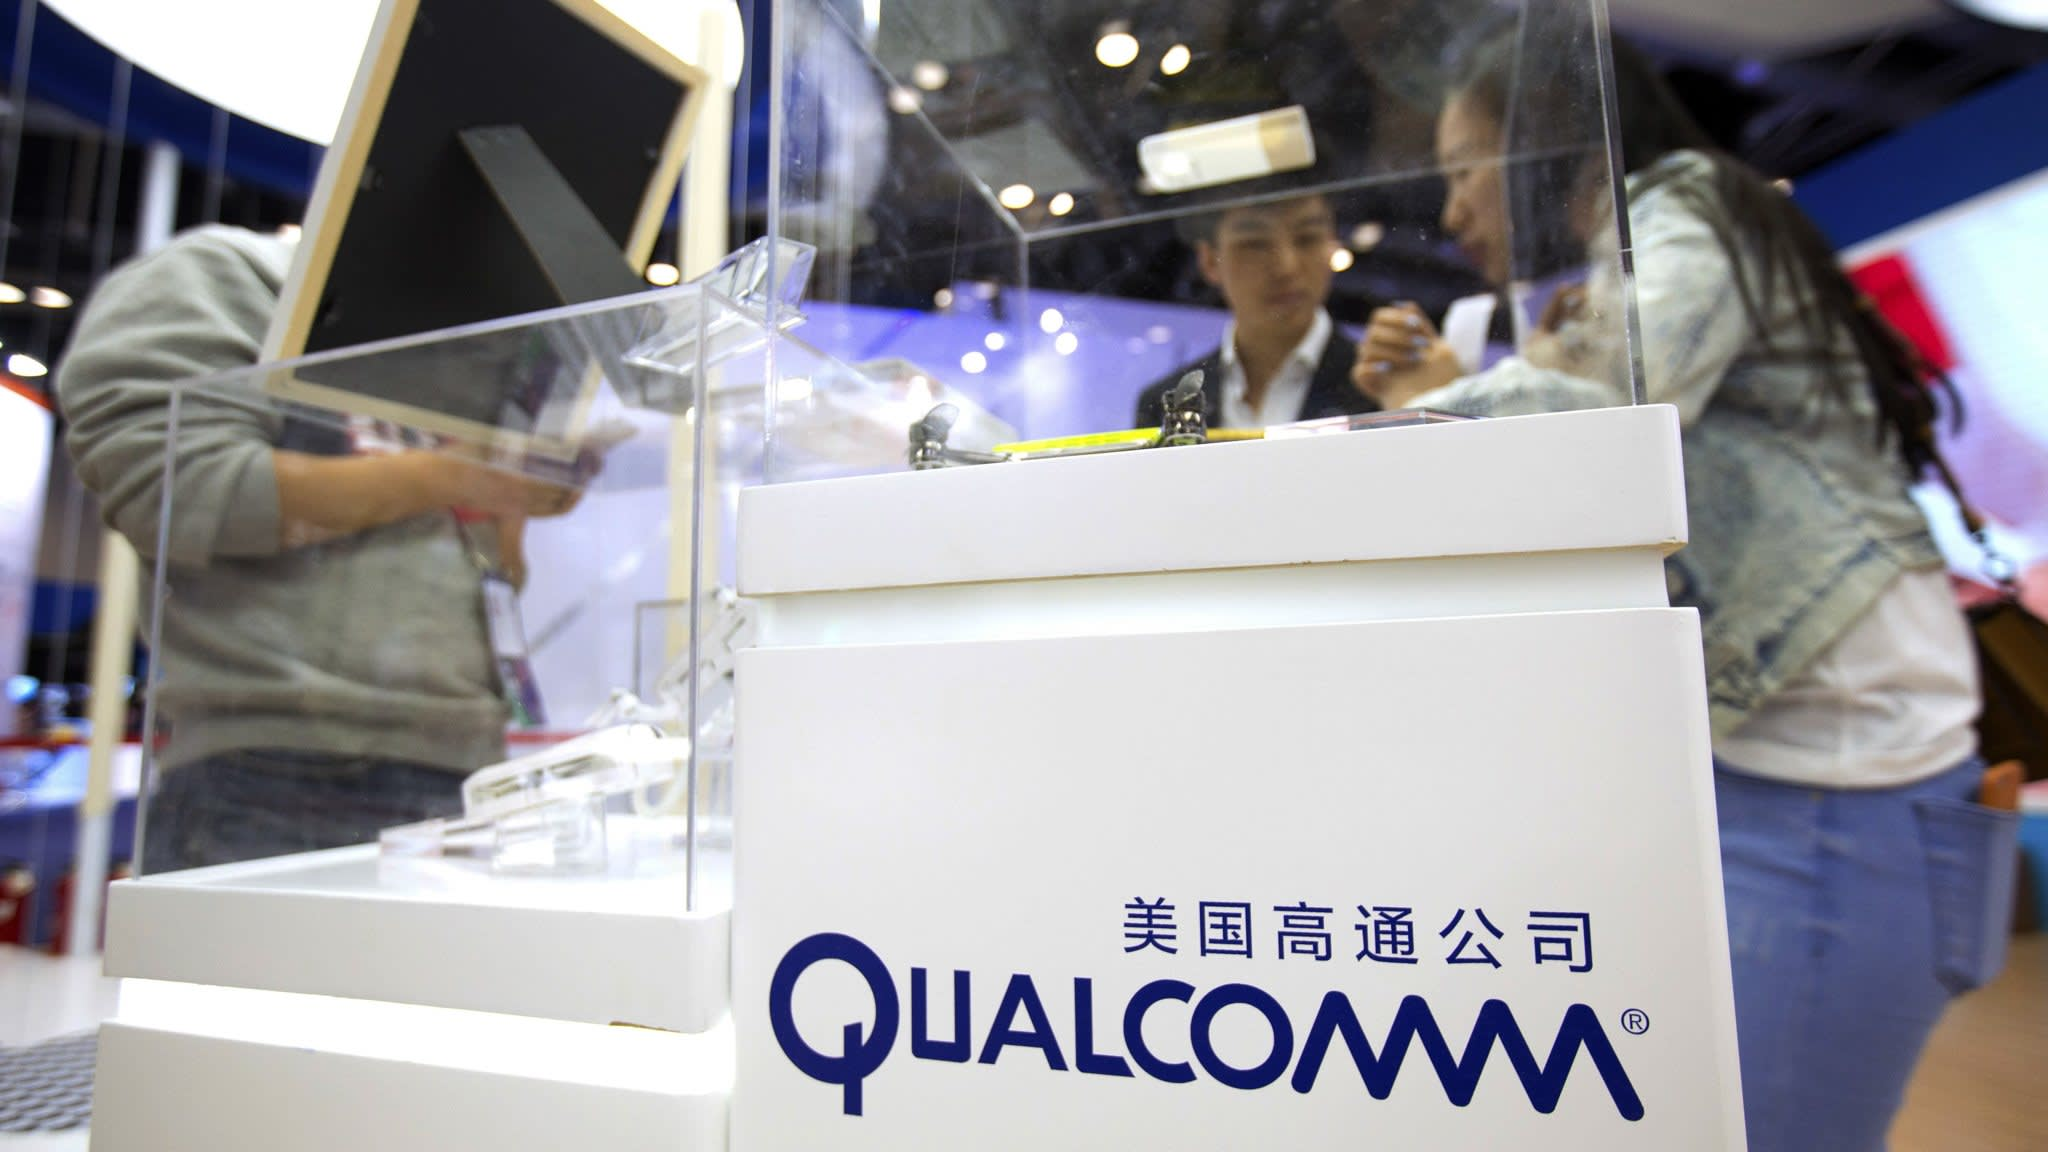 Qualcomm keen to begin due diligence with Broadcom